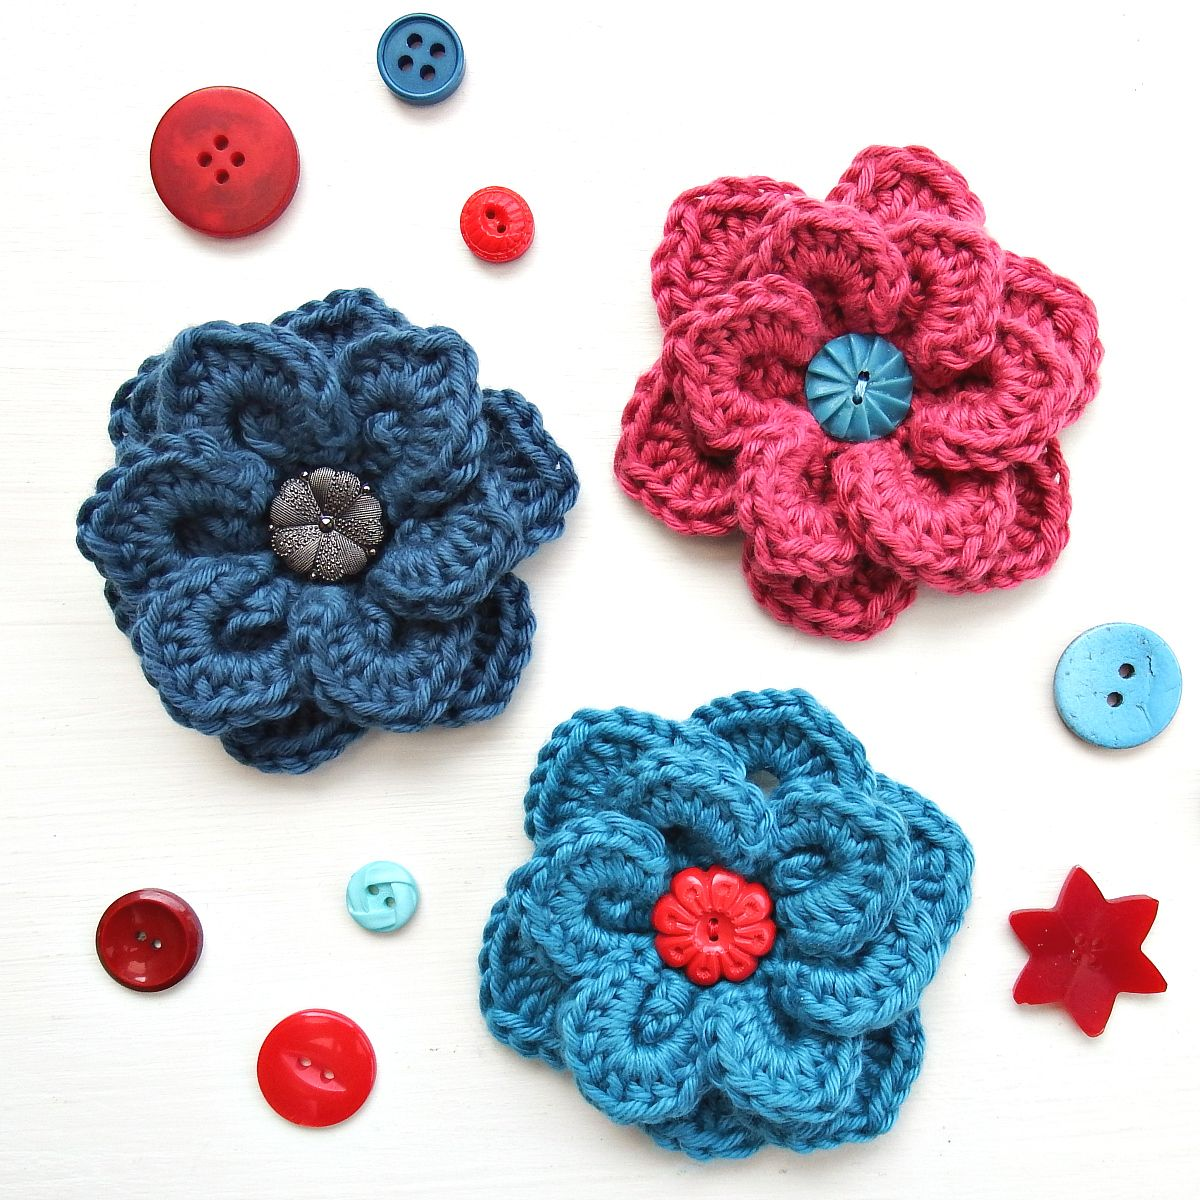 Crochet flowers with 2 layers and overlapping petals | Crochet ...